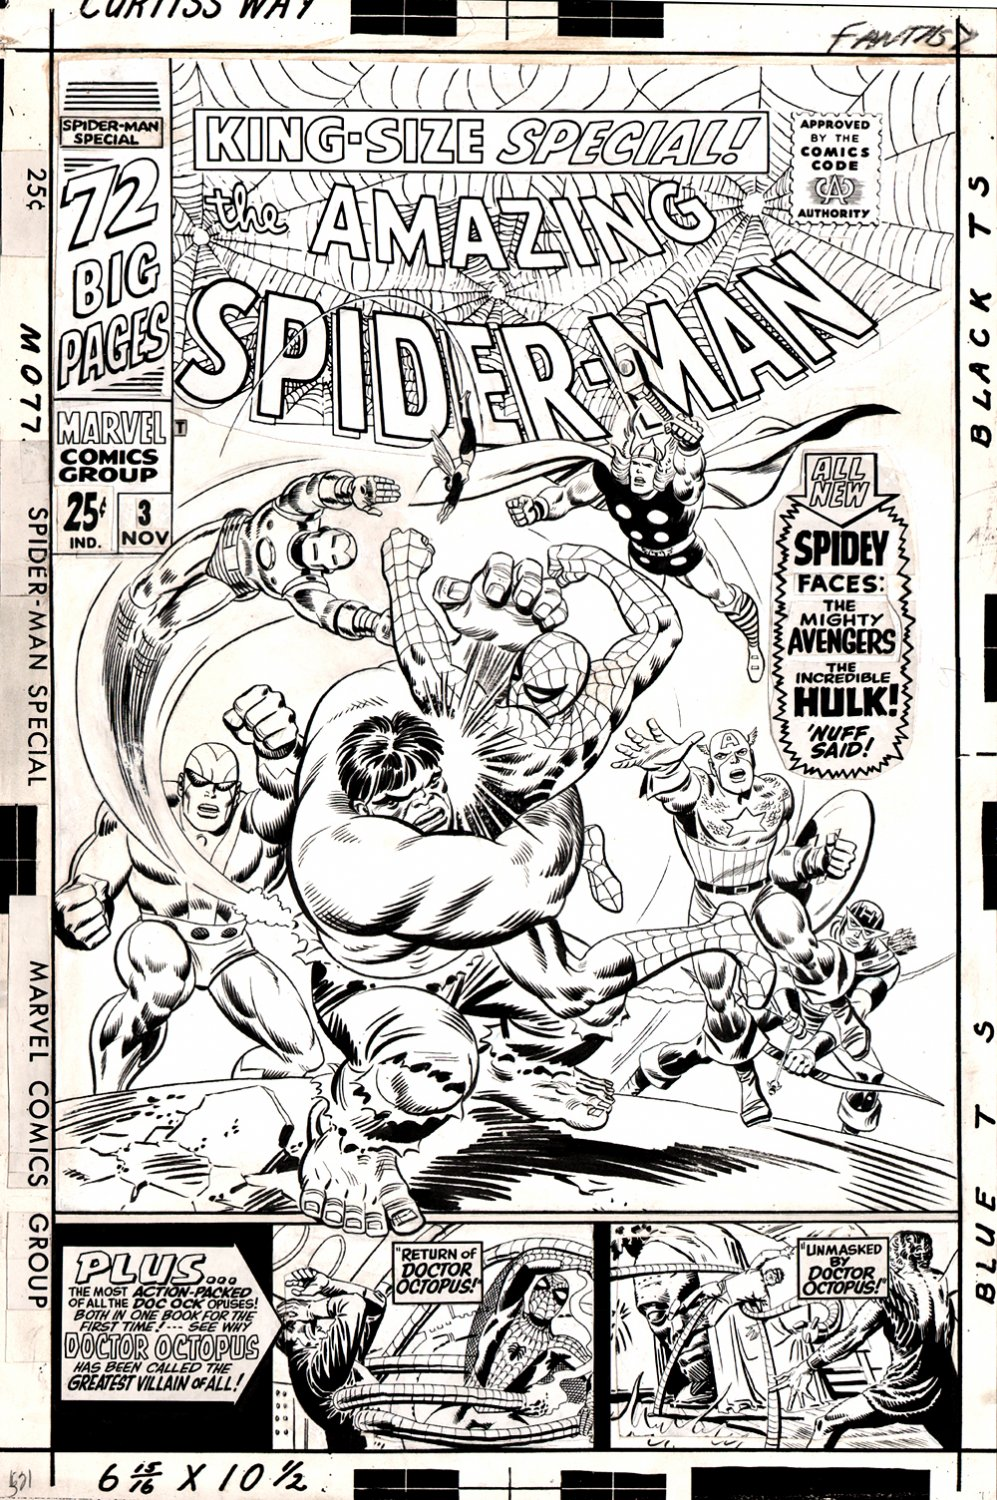 Amazing Spider-Man Annual #3 Cover (Large Art) 1966  SOLD SOLD SOLD!